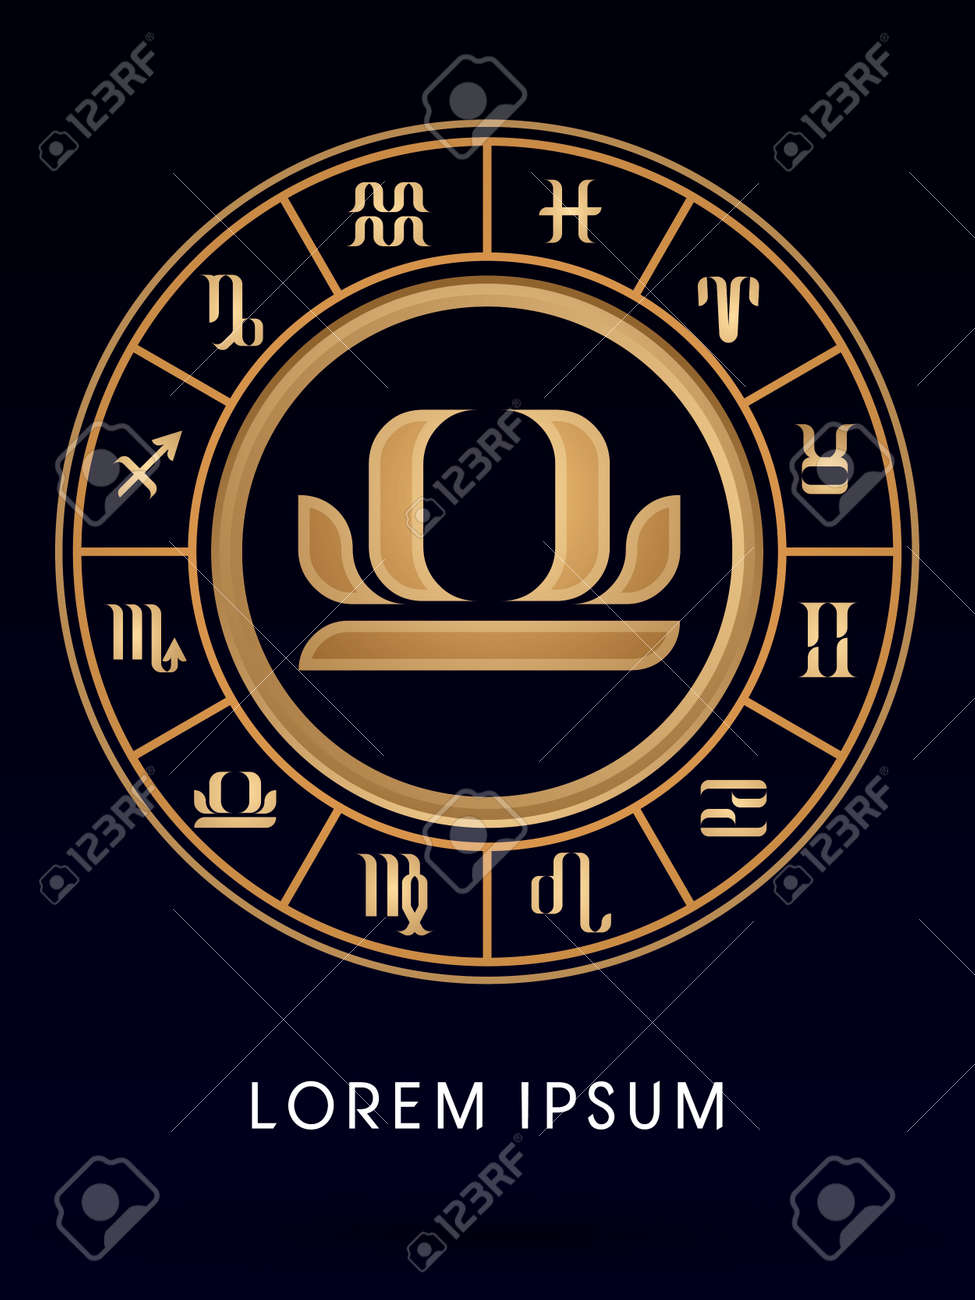 Libra luxury 12 zodiac wheel cycle sign designed using gold line libra luxury 12 zodiac wheel cycle sign designed using gold line color on dark blue background buycottarizona Gallery